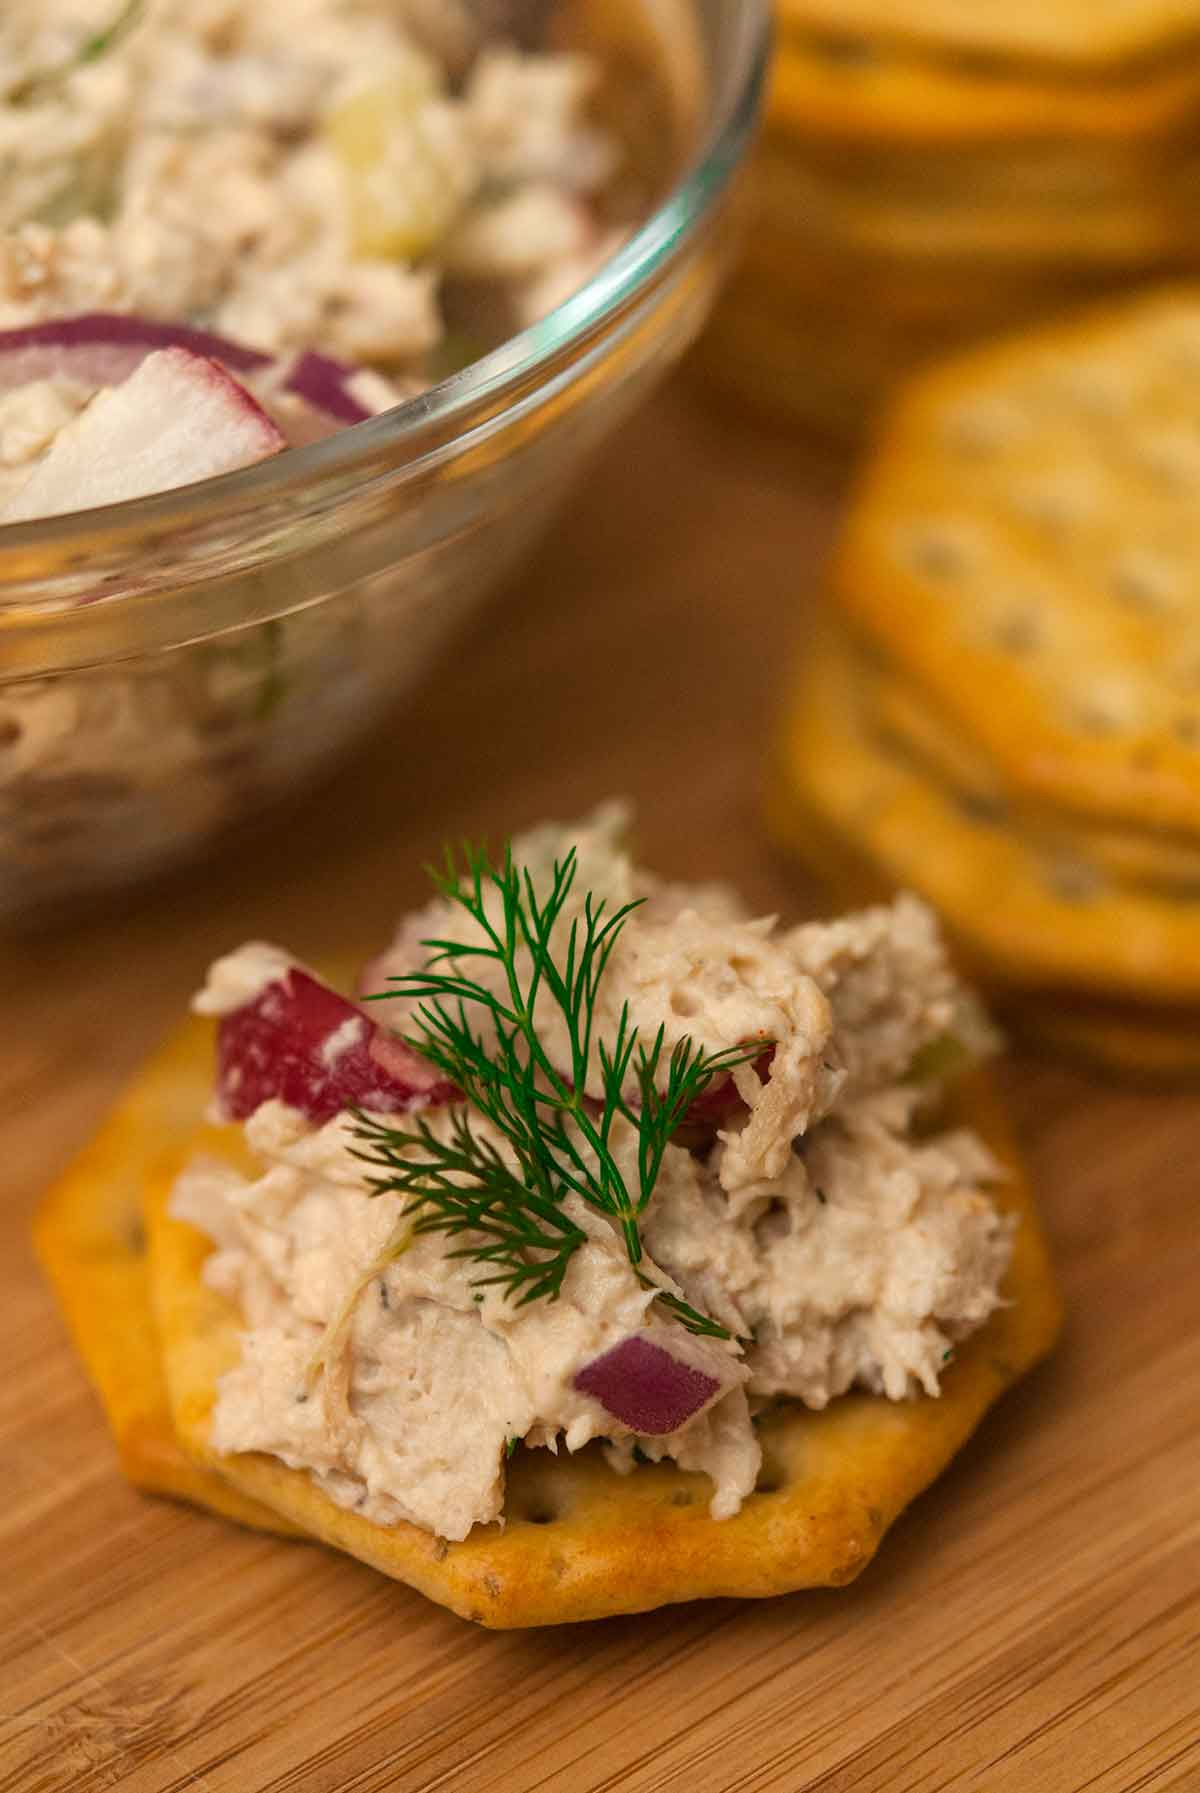 A cracker with chicken salad on a wooden plate.